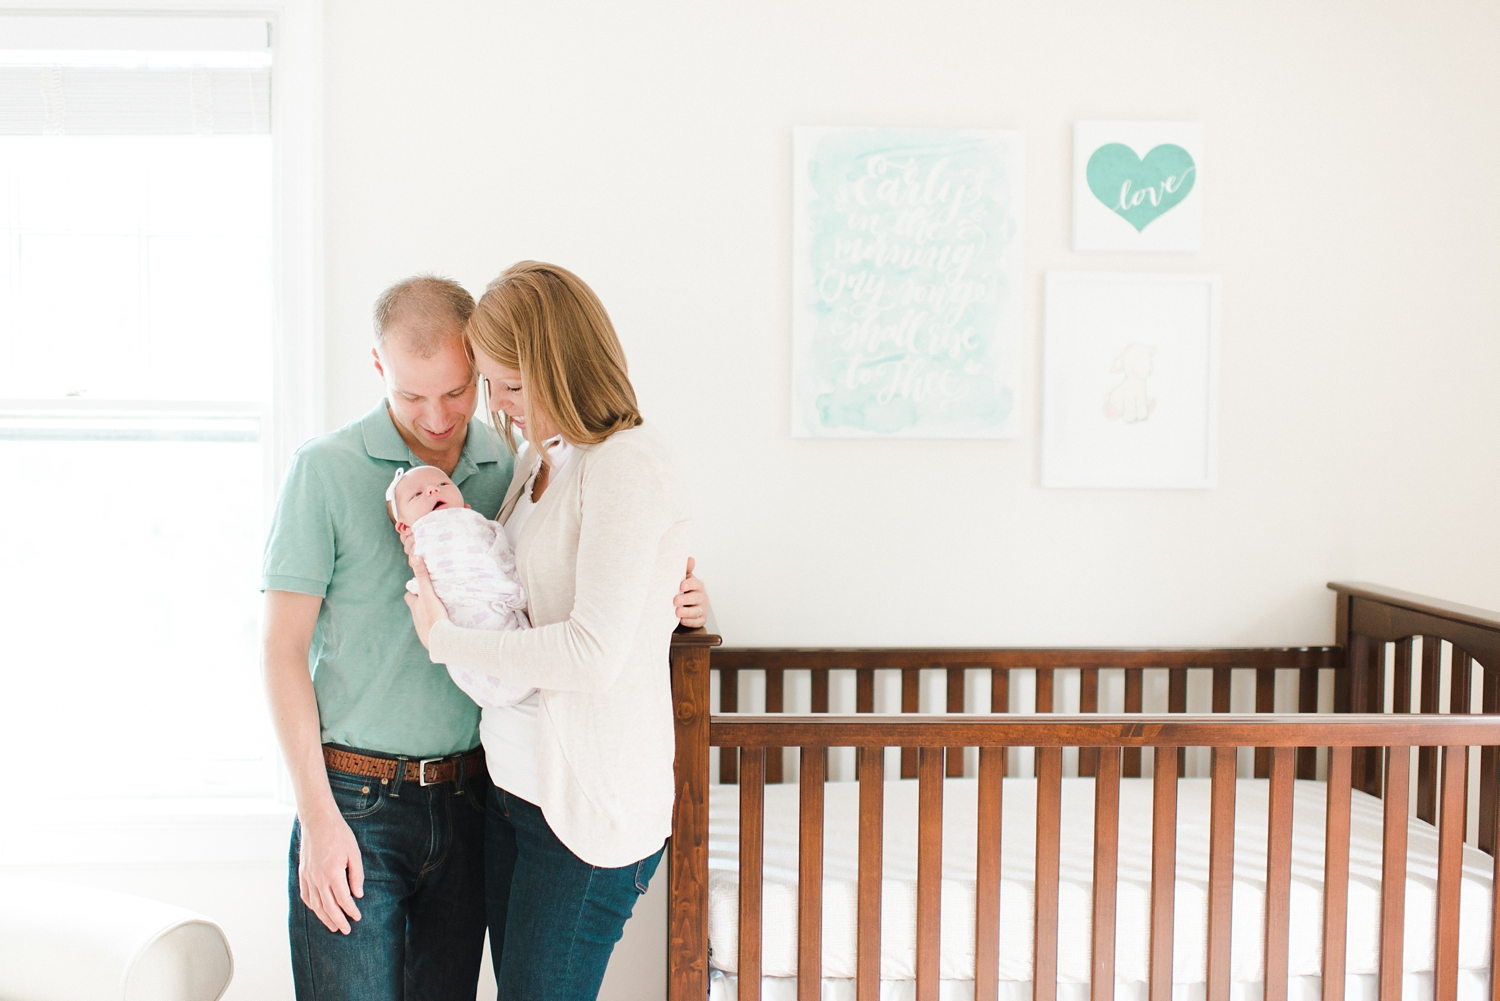 richmond_family_newborn photographer_0052.jpg